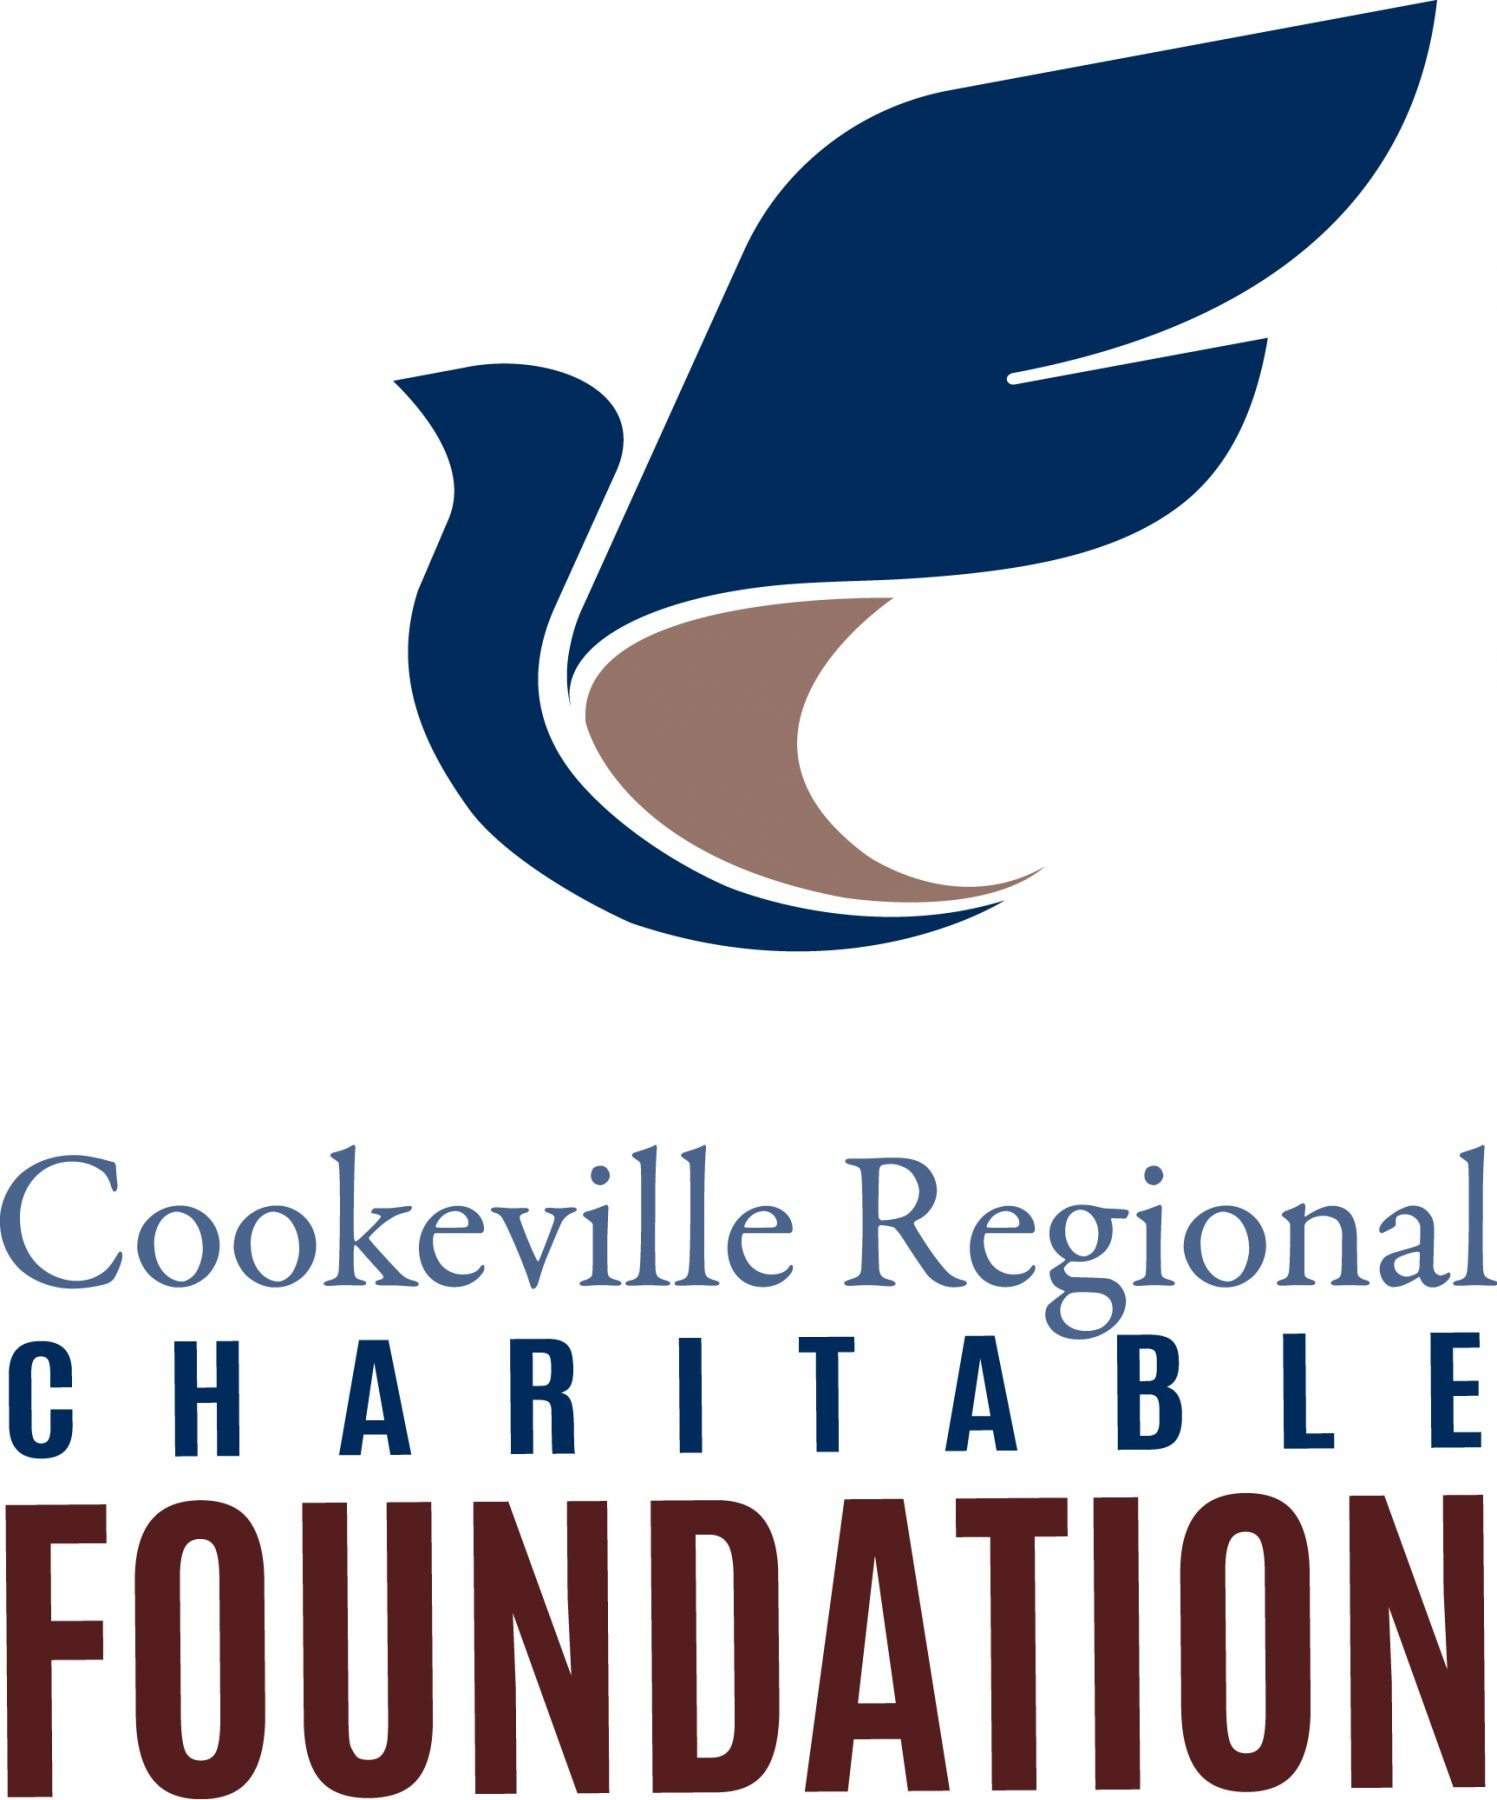 Cookeville Regional Charitable Foundation